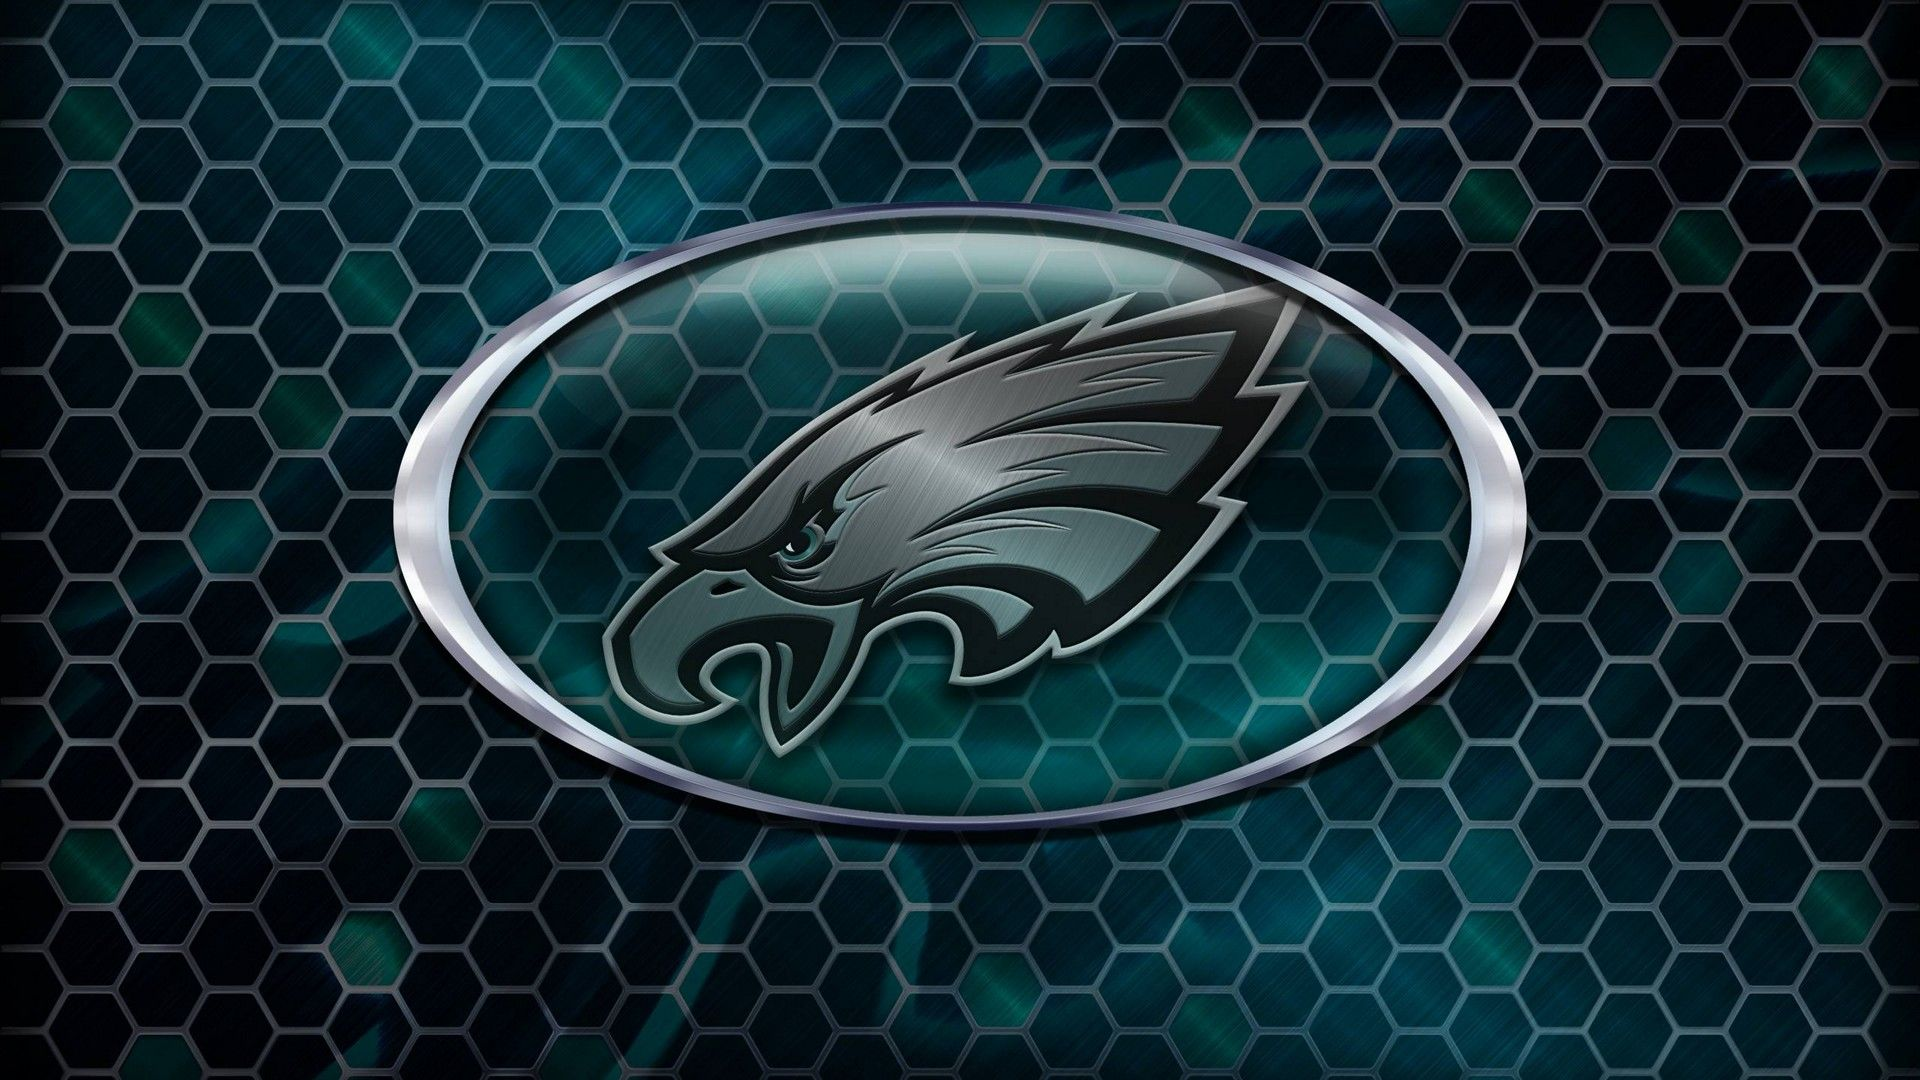 HD Phila Eagles Backgrounds Philadelphia eagles